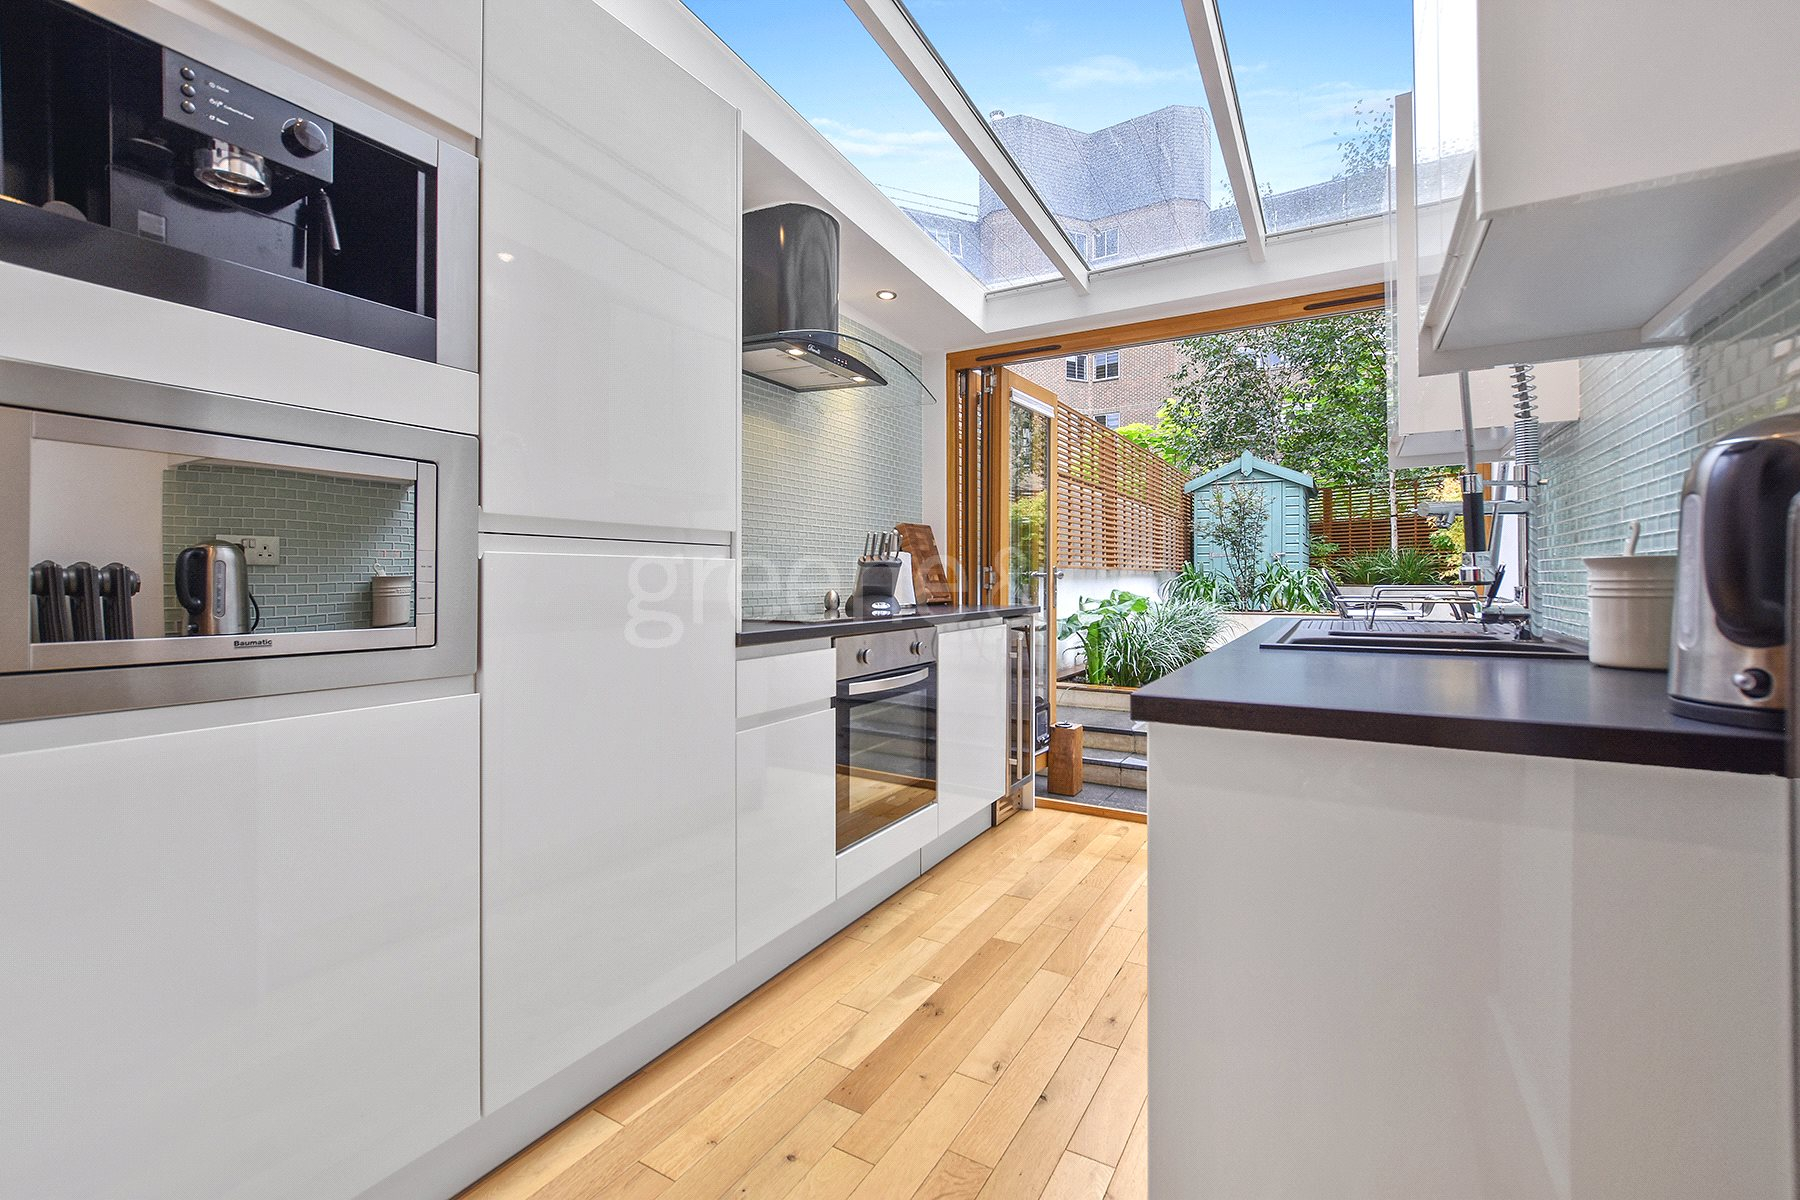 2 Bedrooms Flat for sale in Grittleton Road, Maida Vale, London, W9